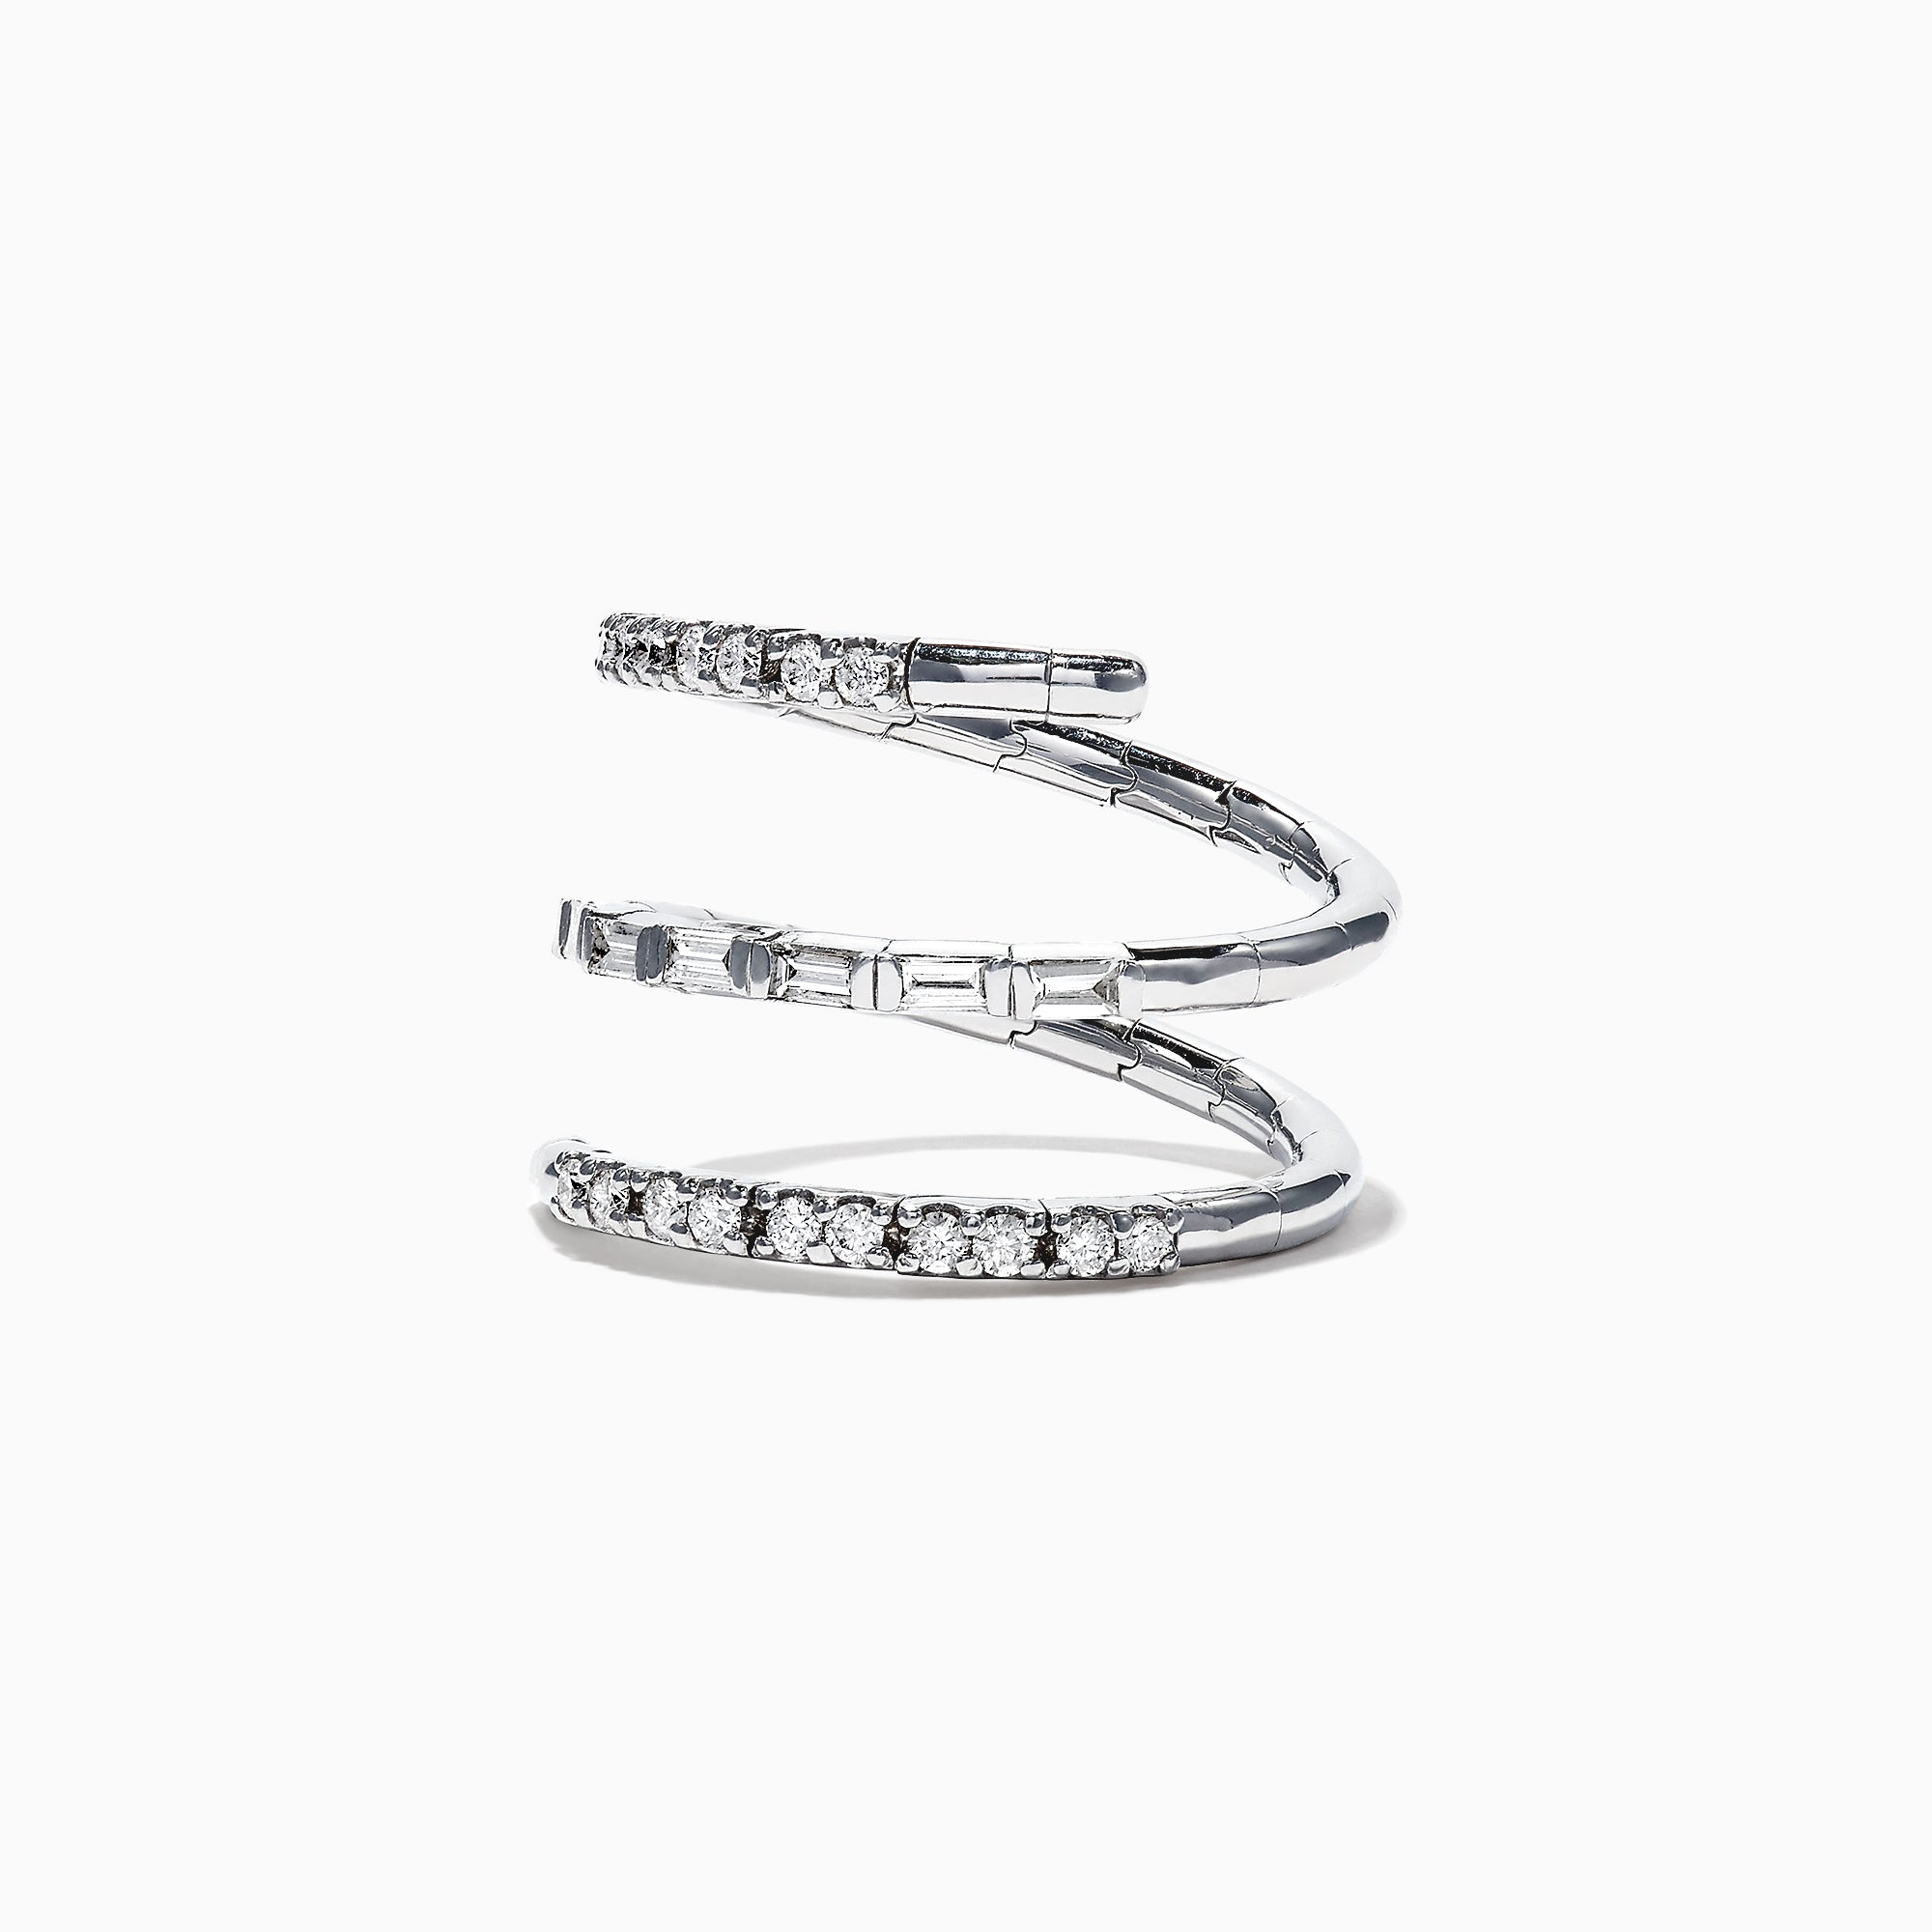 Effy Classique 14K White Gold Diamond Wrap Ring, 0.52 TCW